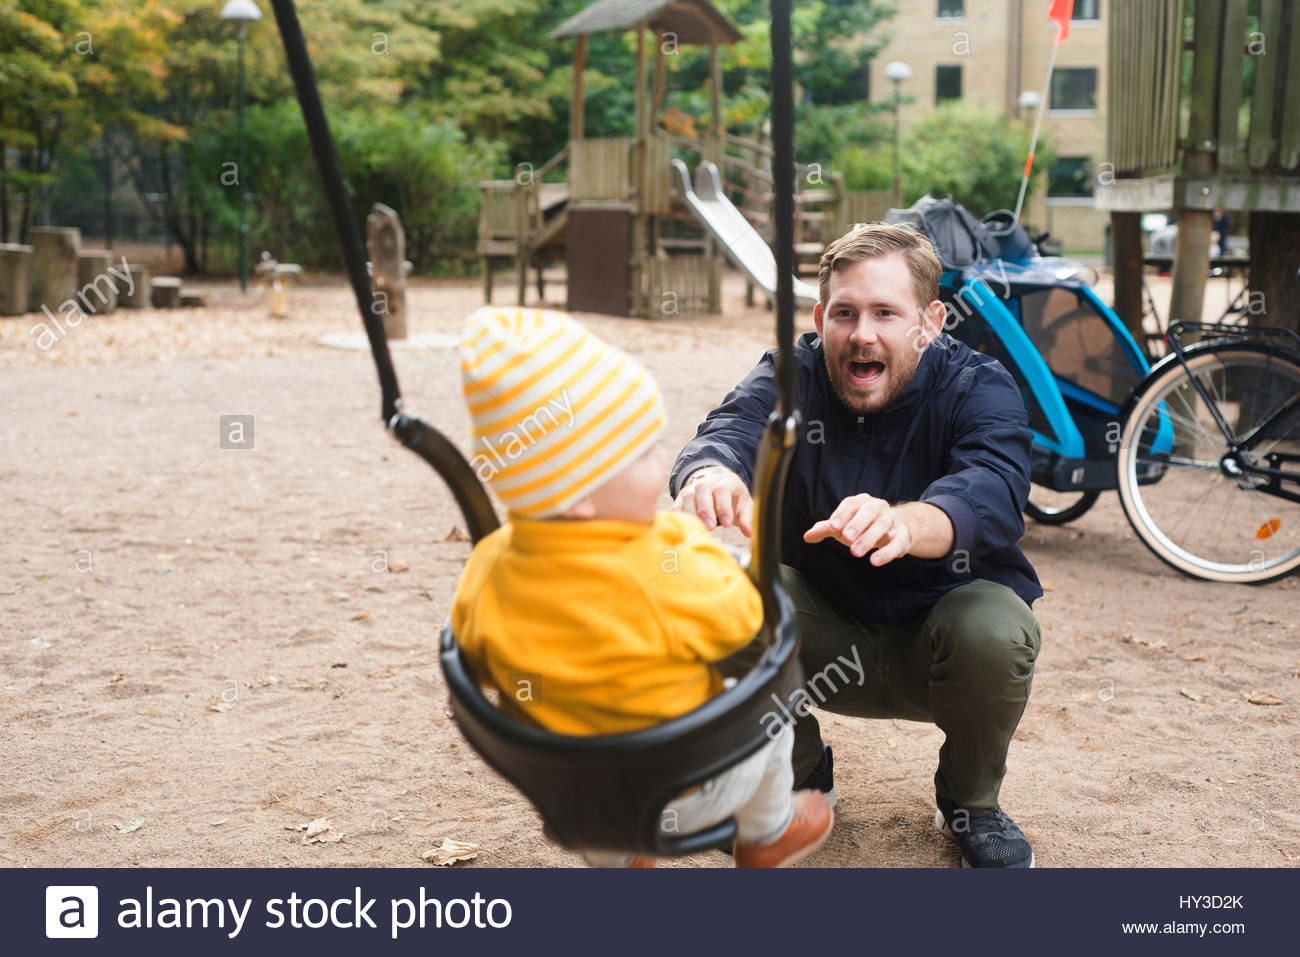 Sweden, Skane, Malmo, Father swinging son ( 12-17 months) in playground - Stock Image